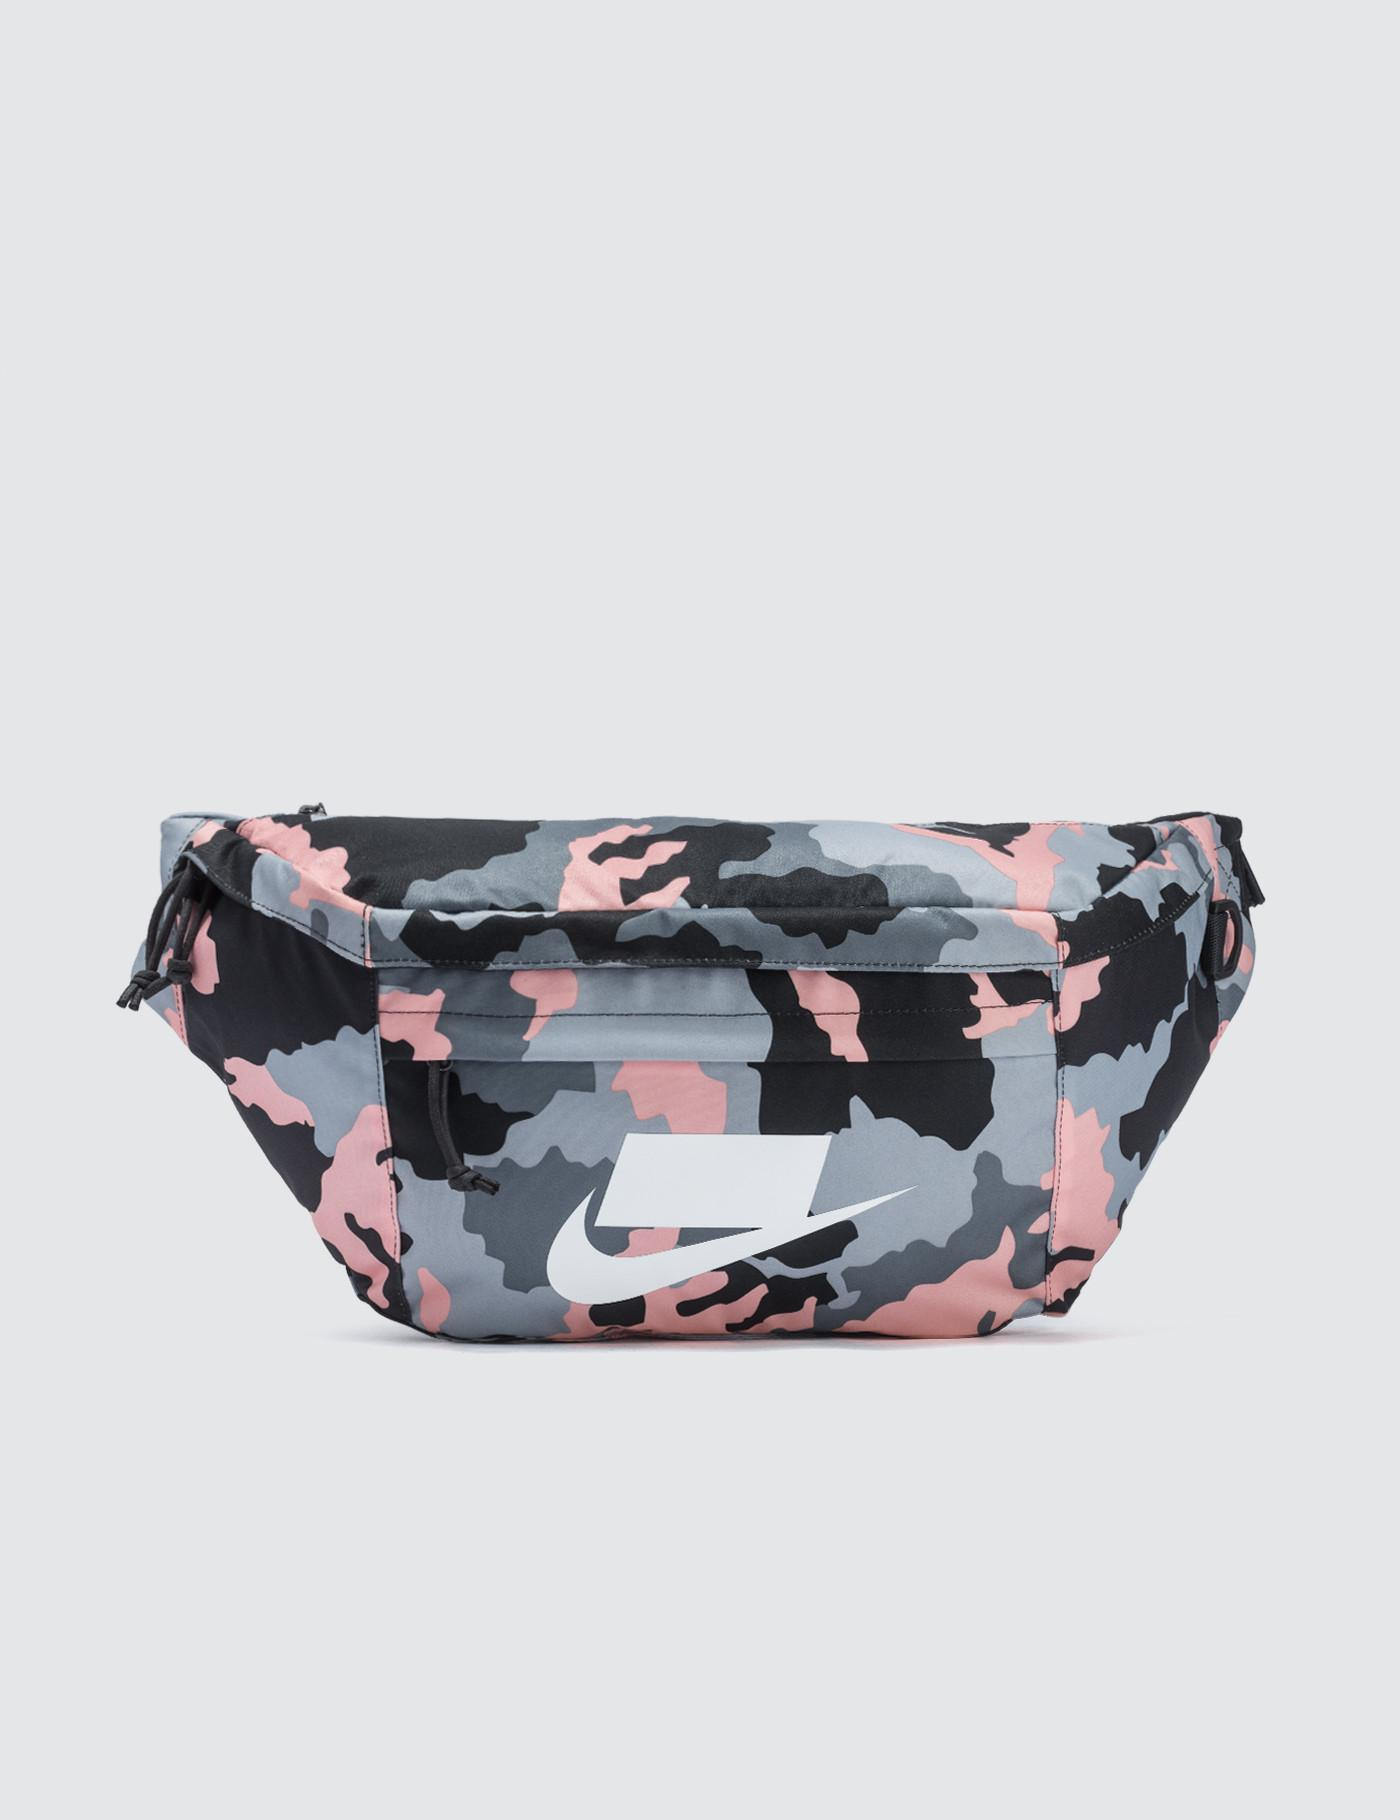 Nike Small Items Waist Pack in Pink - Lyst 7d0a4406192de